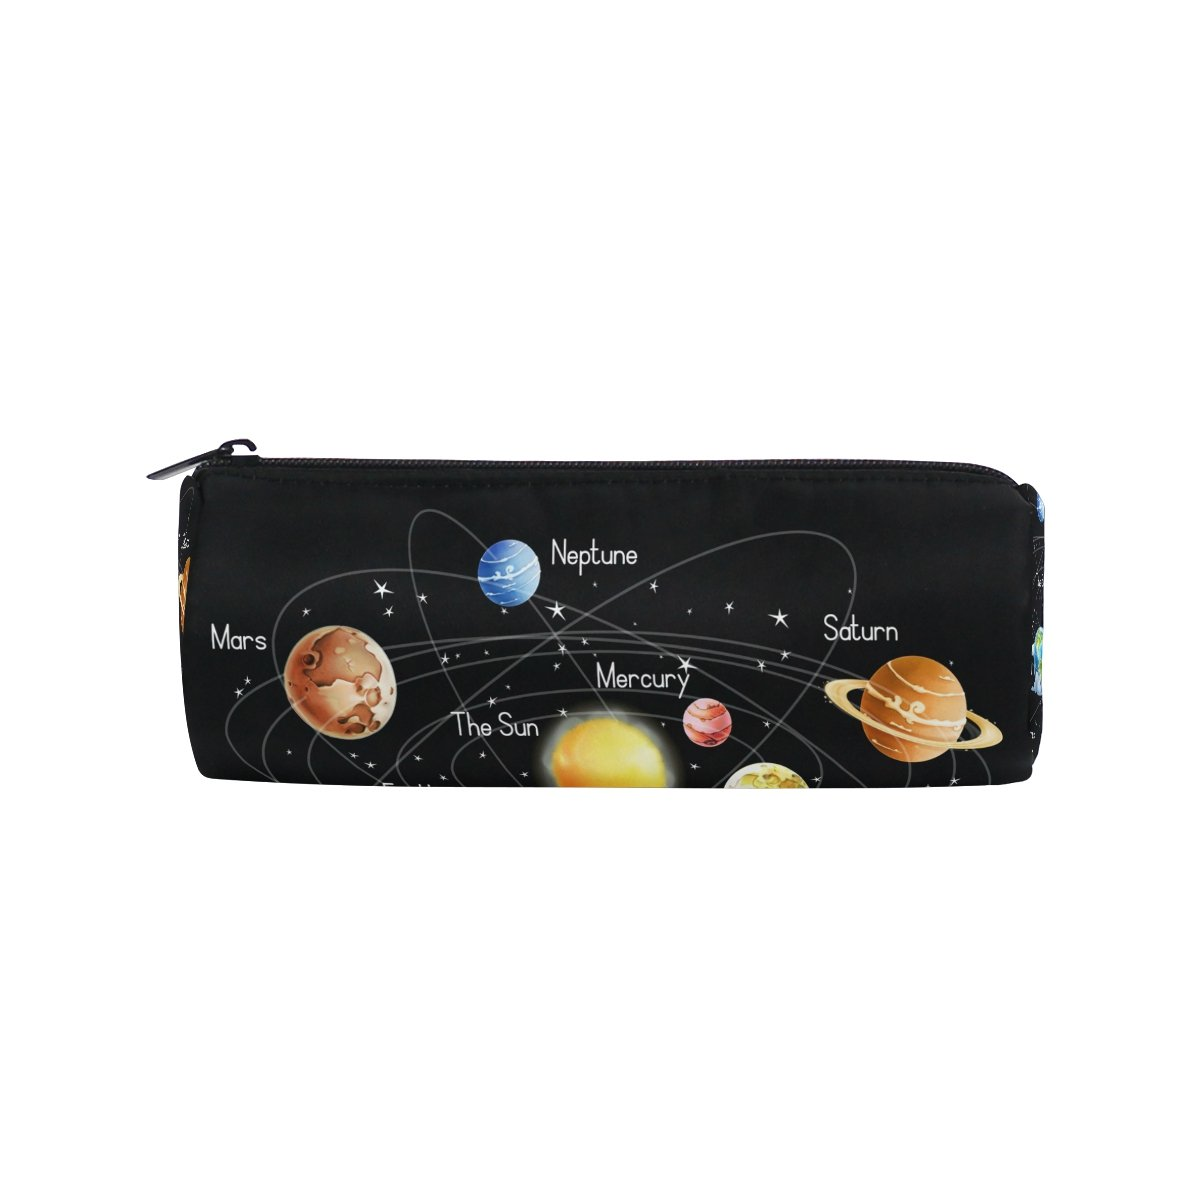 ShineSnow Solar System Galaxy Pencil Pen Bag Case, Planet Sun Moon Student Office College Middle School High School Large Storage Pouch Holder Box Organizer